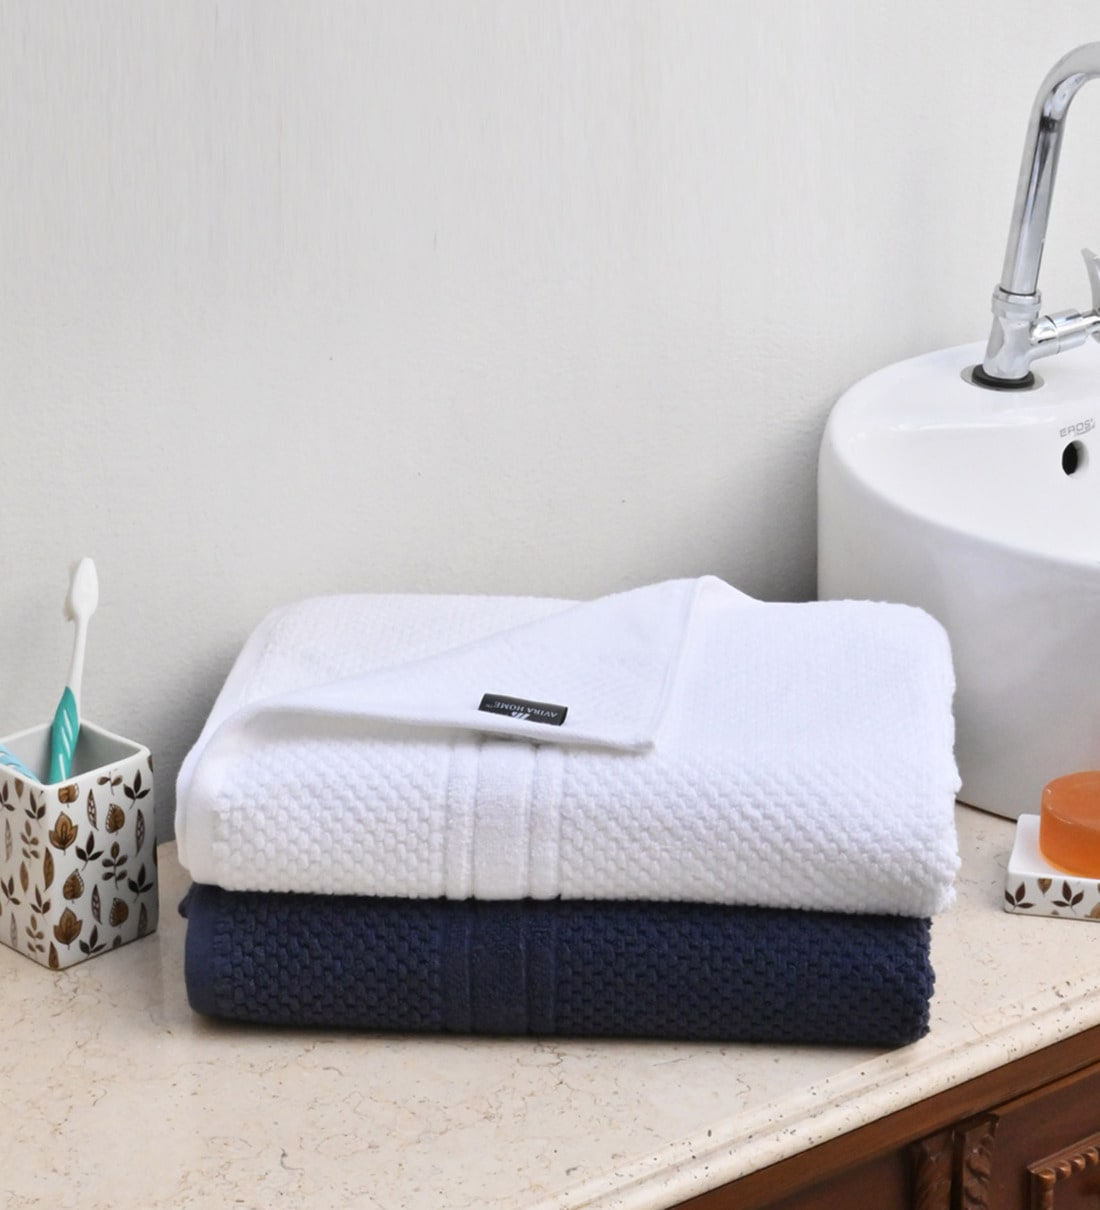 Buy White Navy Blue Cotton 600 Gsm Set Of 2 Bath Towels By Avi Living Online Solid Colour Bath Towels Bath Towels Furnishings Pepperfry Product